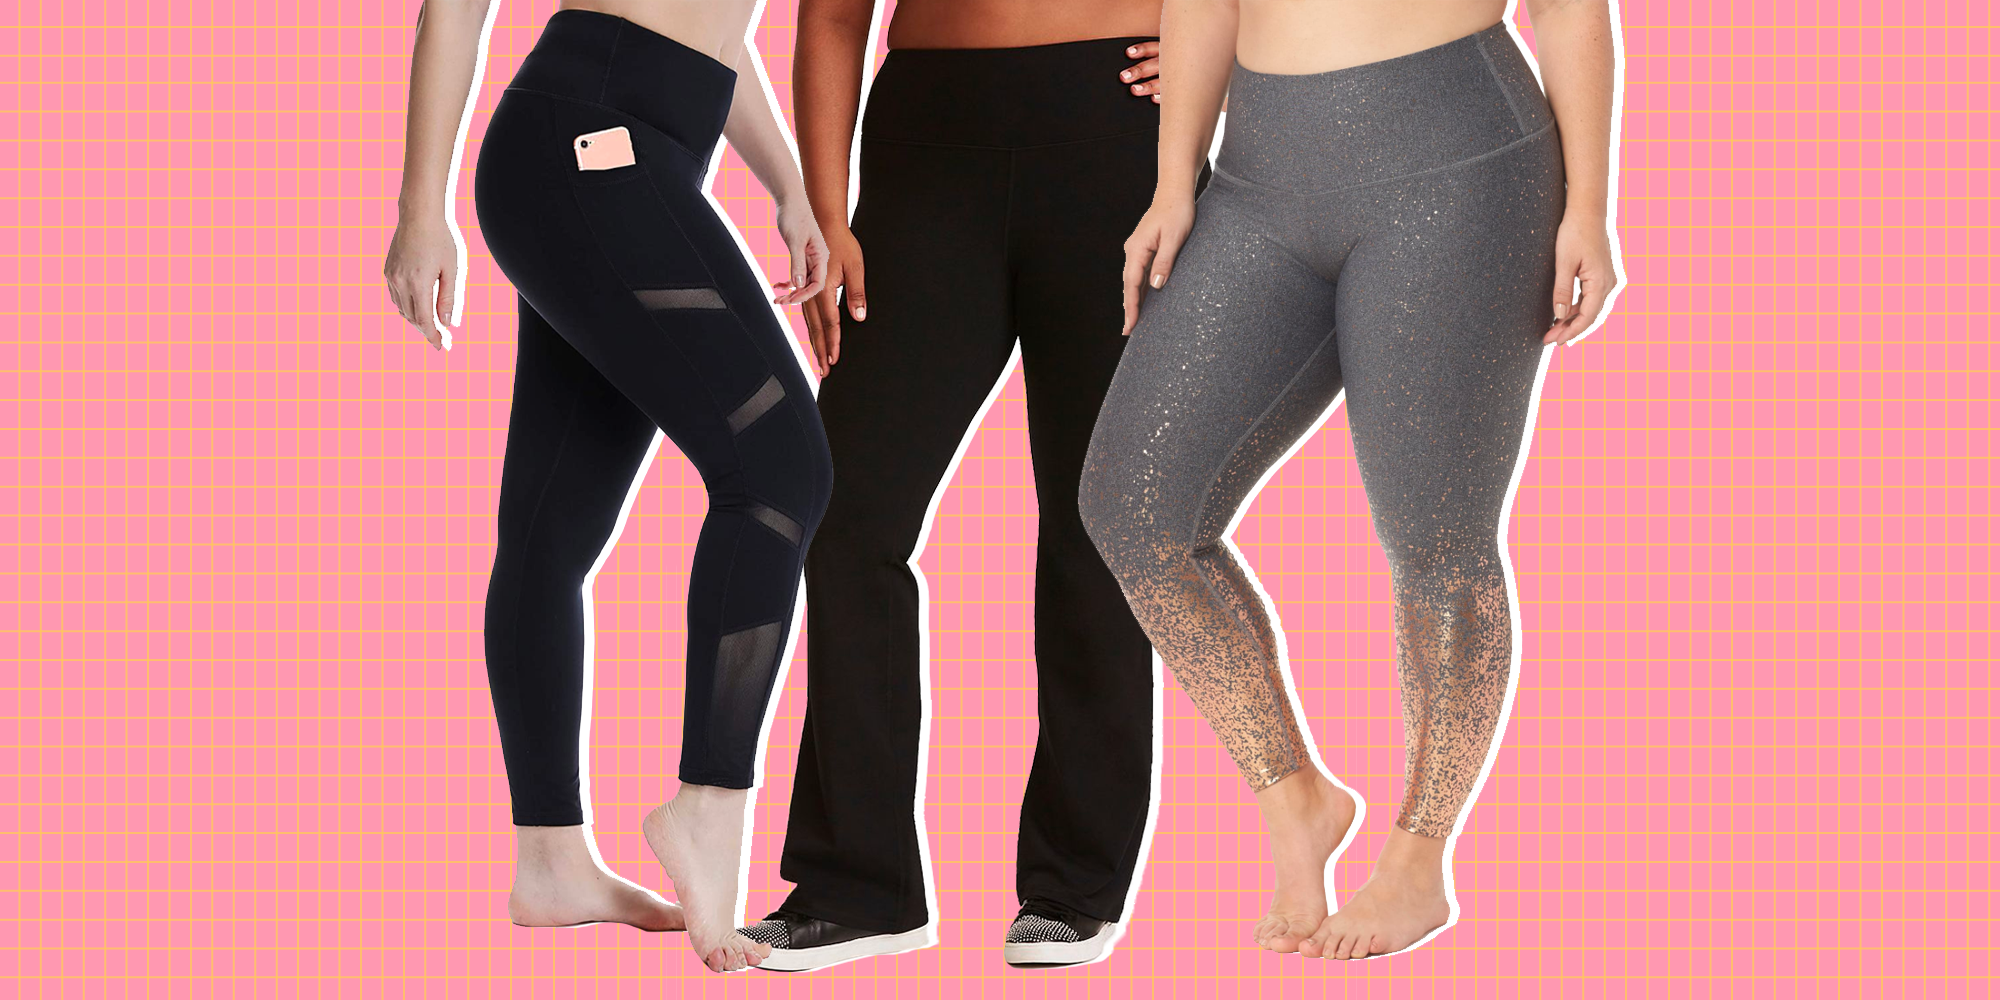 13 Best Plus Size Yoga Pants 2020